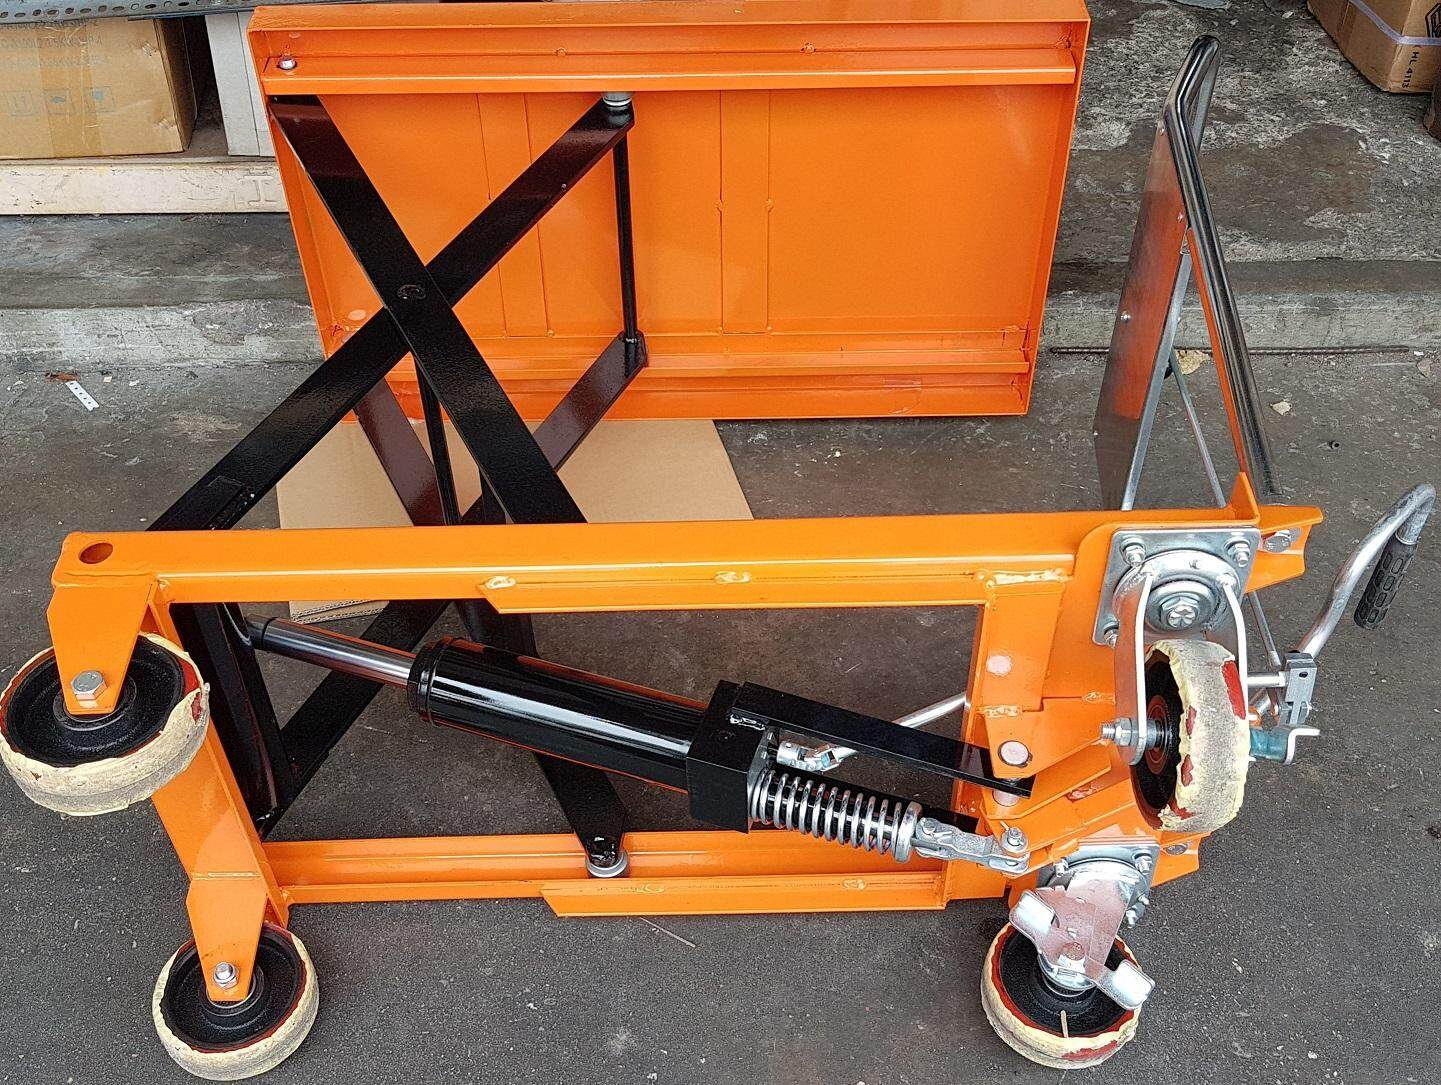 1000 kg jack put safety table lift lifter lifting hydraulic oil up level top portable wheel roller roll tire handle heavy trolley car truck push high height tall pull scissor folding fold driver driver extend rise transport steering carrier carry load